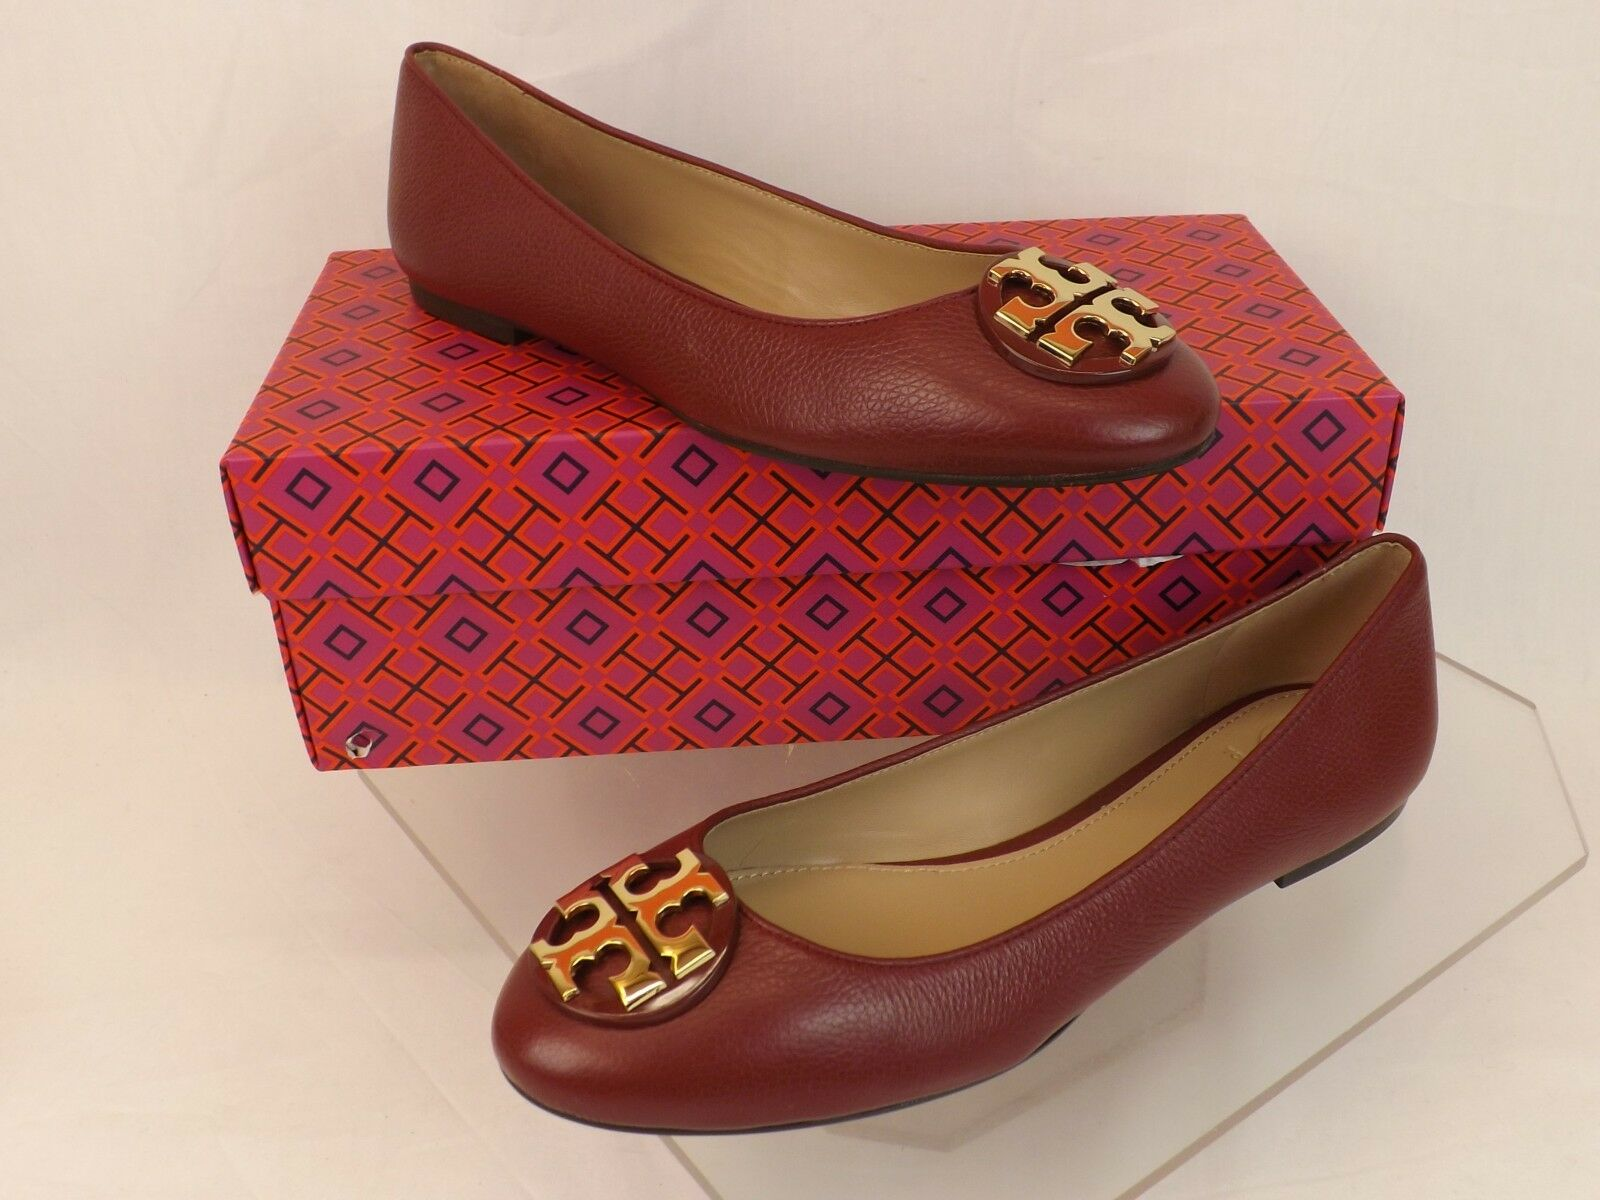 NIB TORY BURCH CLAIRE RED AGATE TUMBLED LEATHER gold TONE REVA BALLET FLATS 10